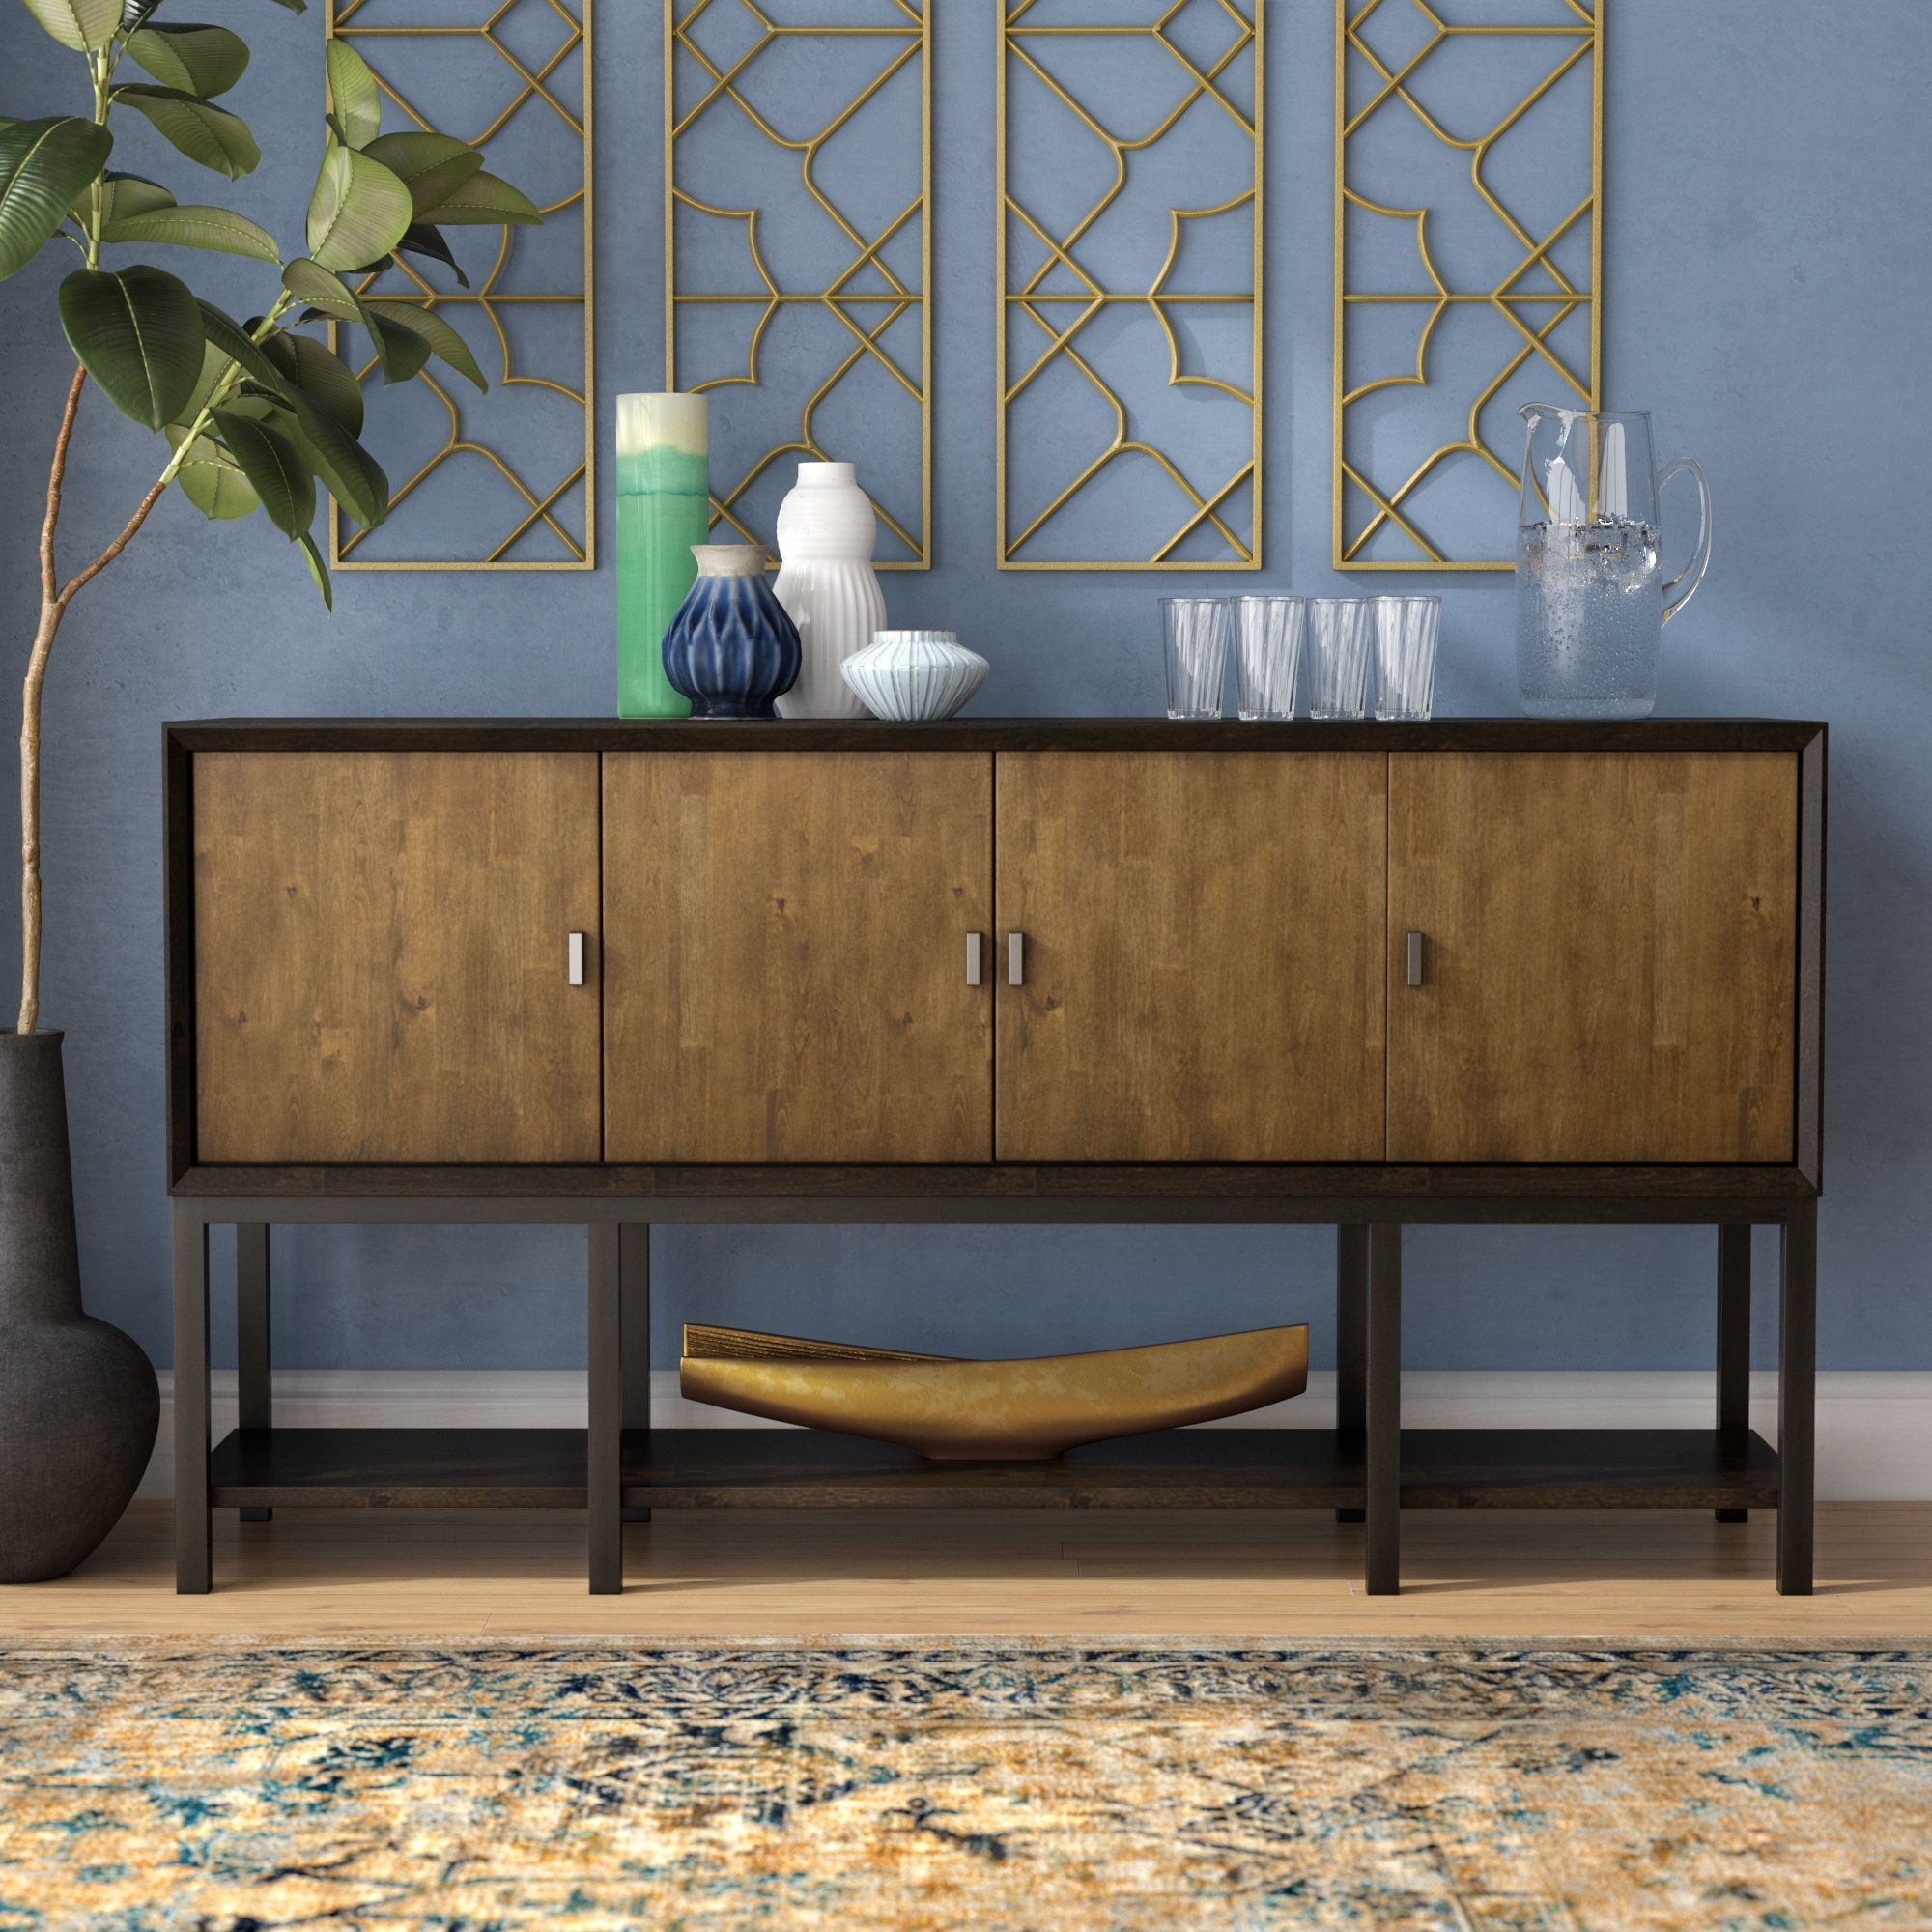 Latitude Run Kolton Sideboard & Reviews | Wayfair regarding Open Shelf Brass 4-Drawer Sideboards (Image 10 of 30)